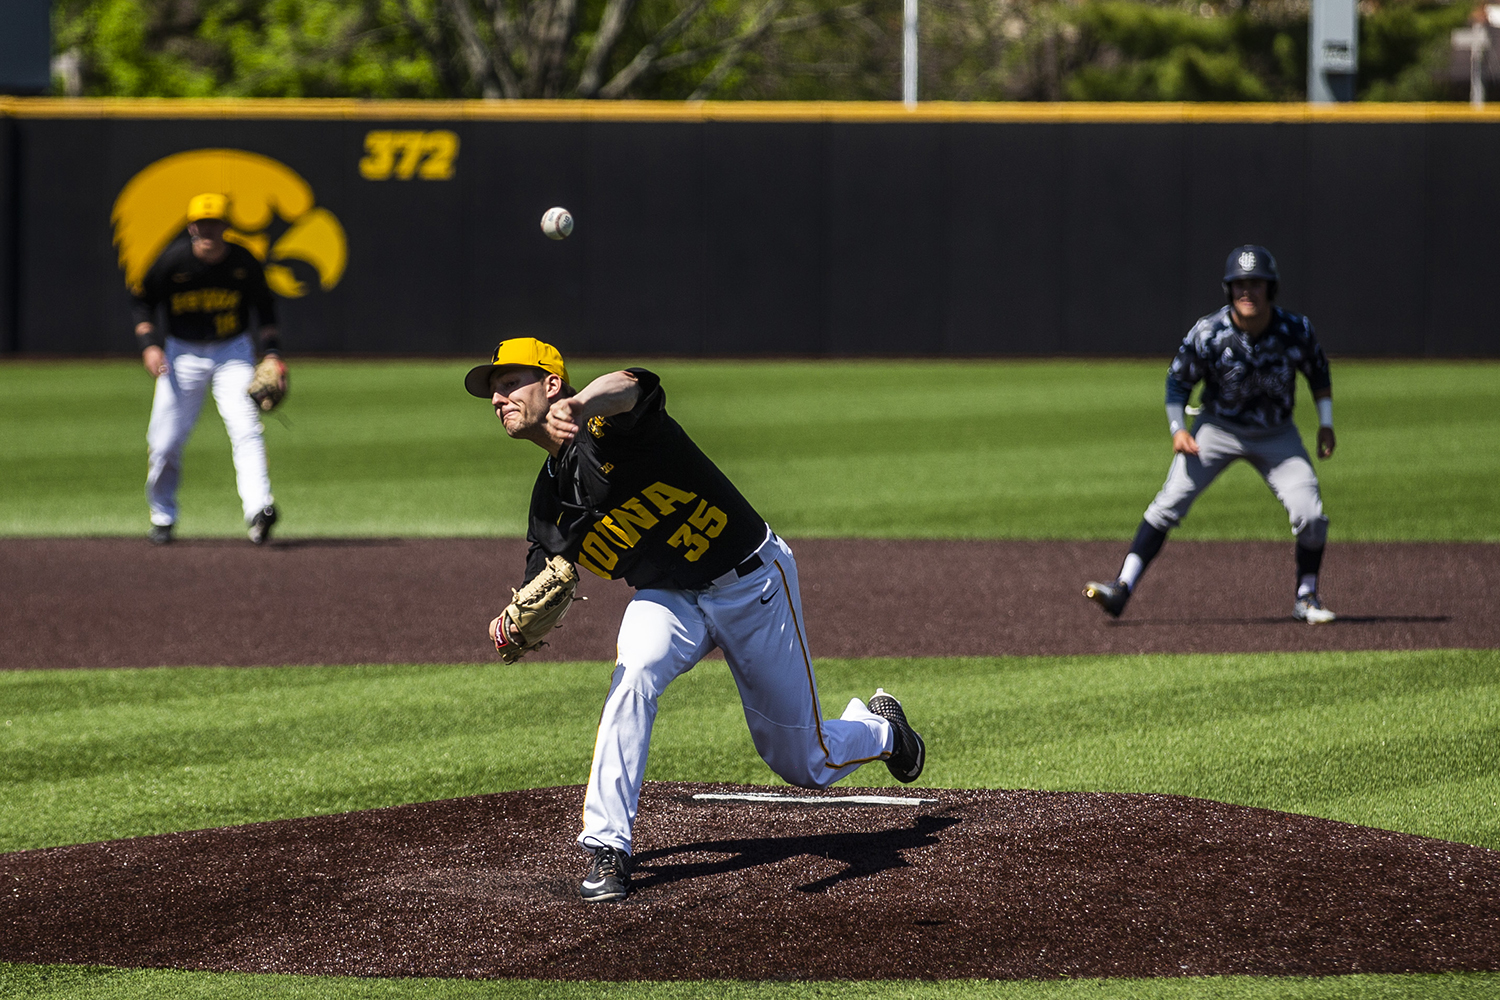 Iowa pitcher Cam Baumann throws the ball during the game against UC Irvine at Duane Banks Field on Saturday, May 4, 2019. The Hawkeyes defeated the Anteaters 1-0.